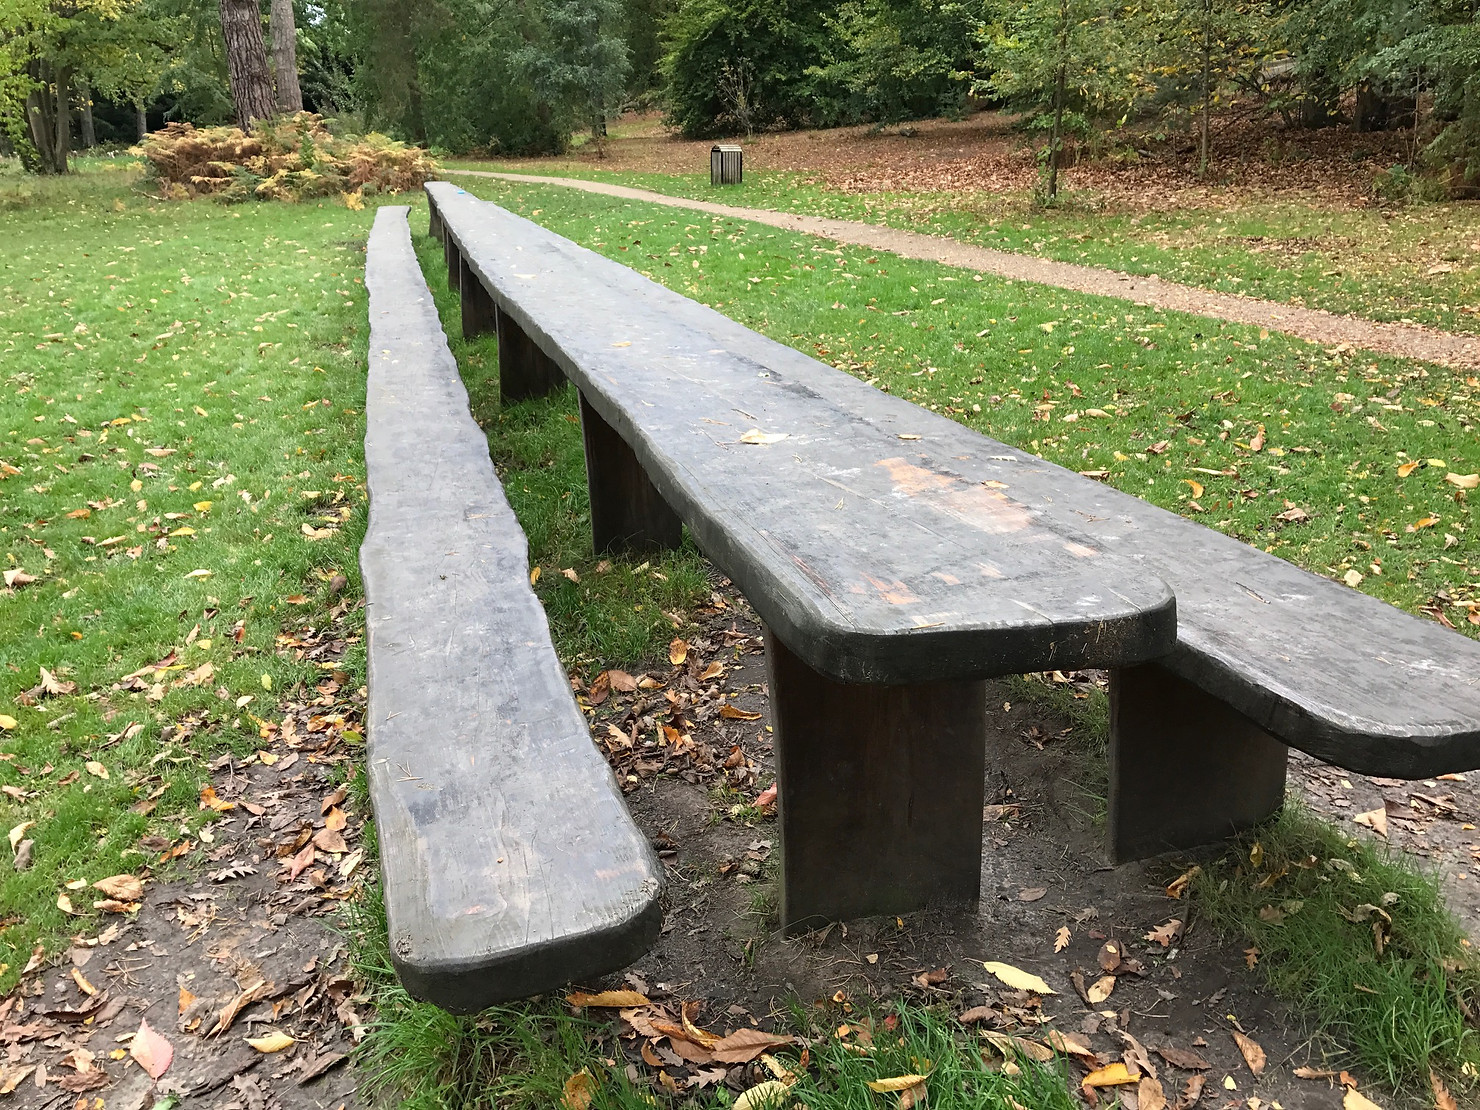 England's longest picnic bench - carved from a single piece of wood